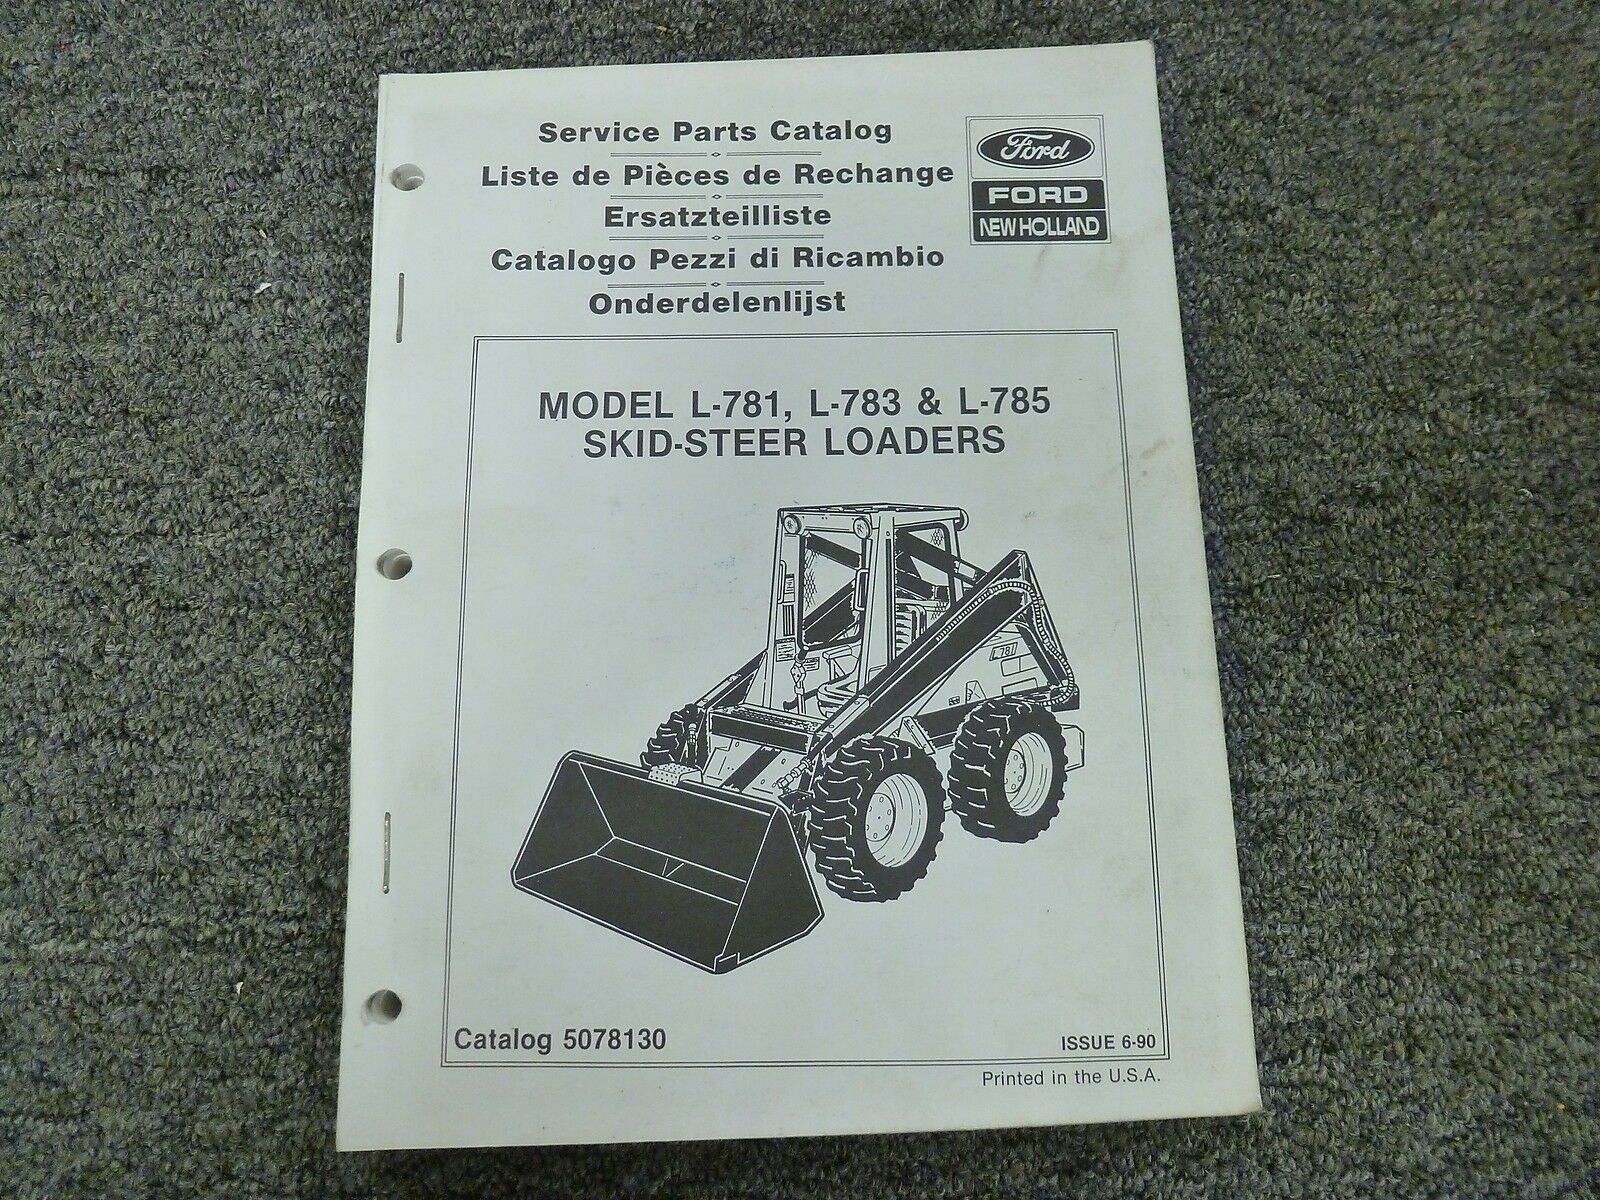 New Holland Skid Steer Parts Diagram Ford New Holland L781 L783 L785 Skid Steer Loader Parts Catalog Manual Book 14895